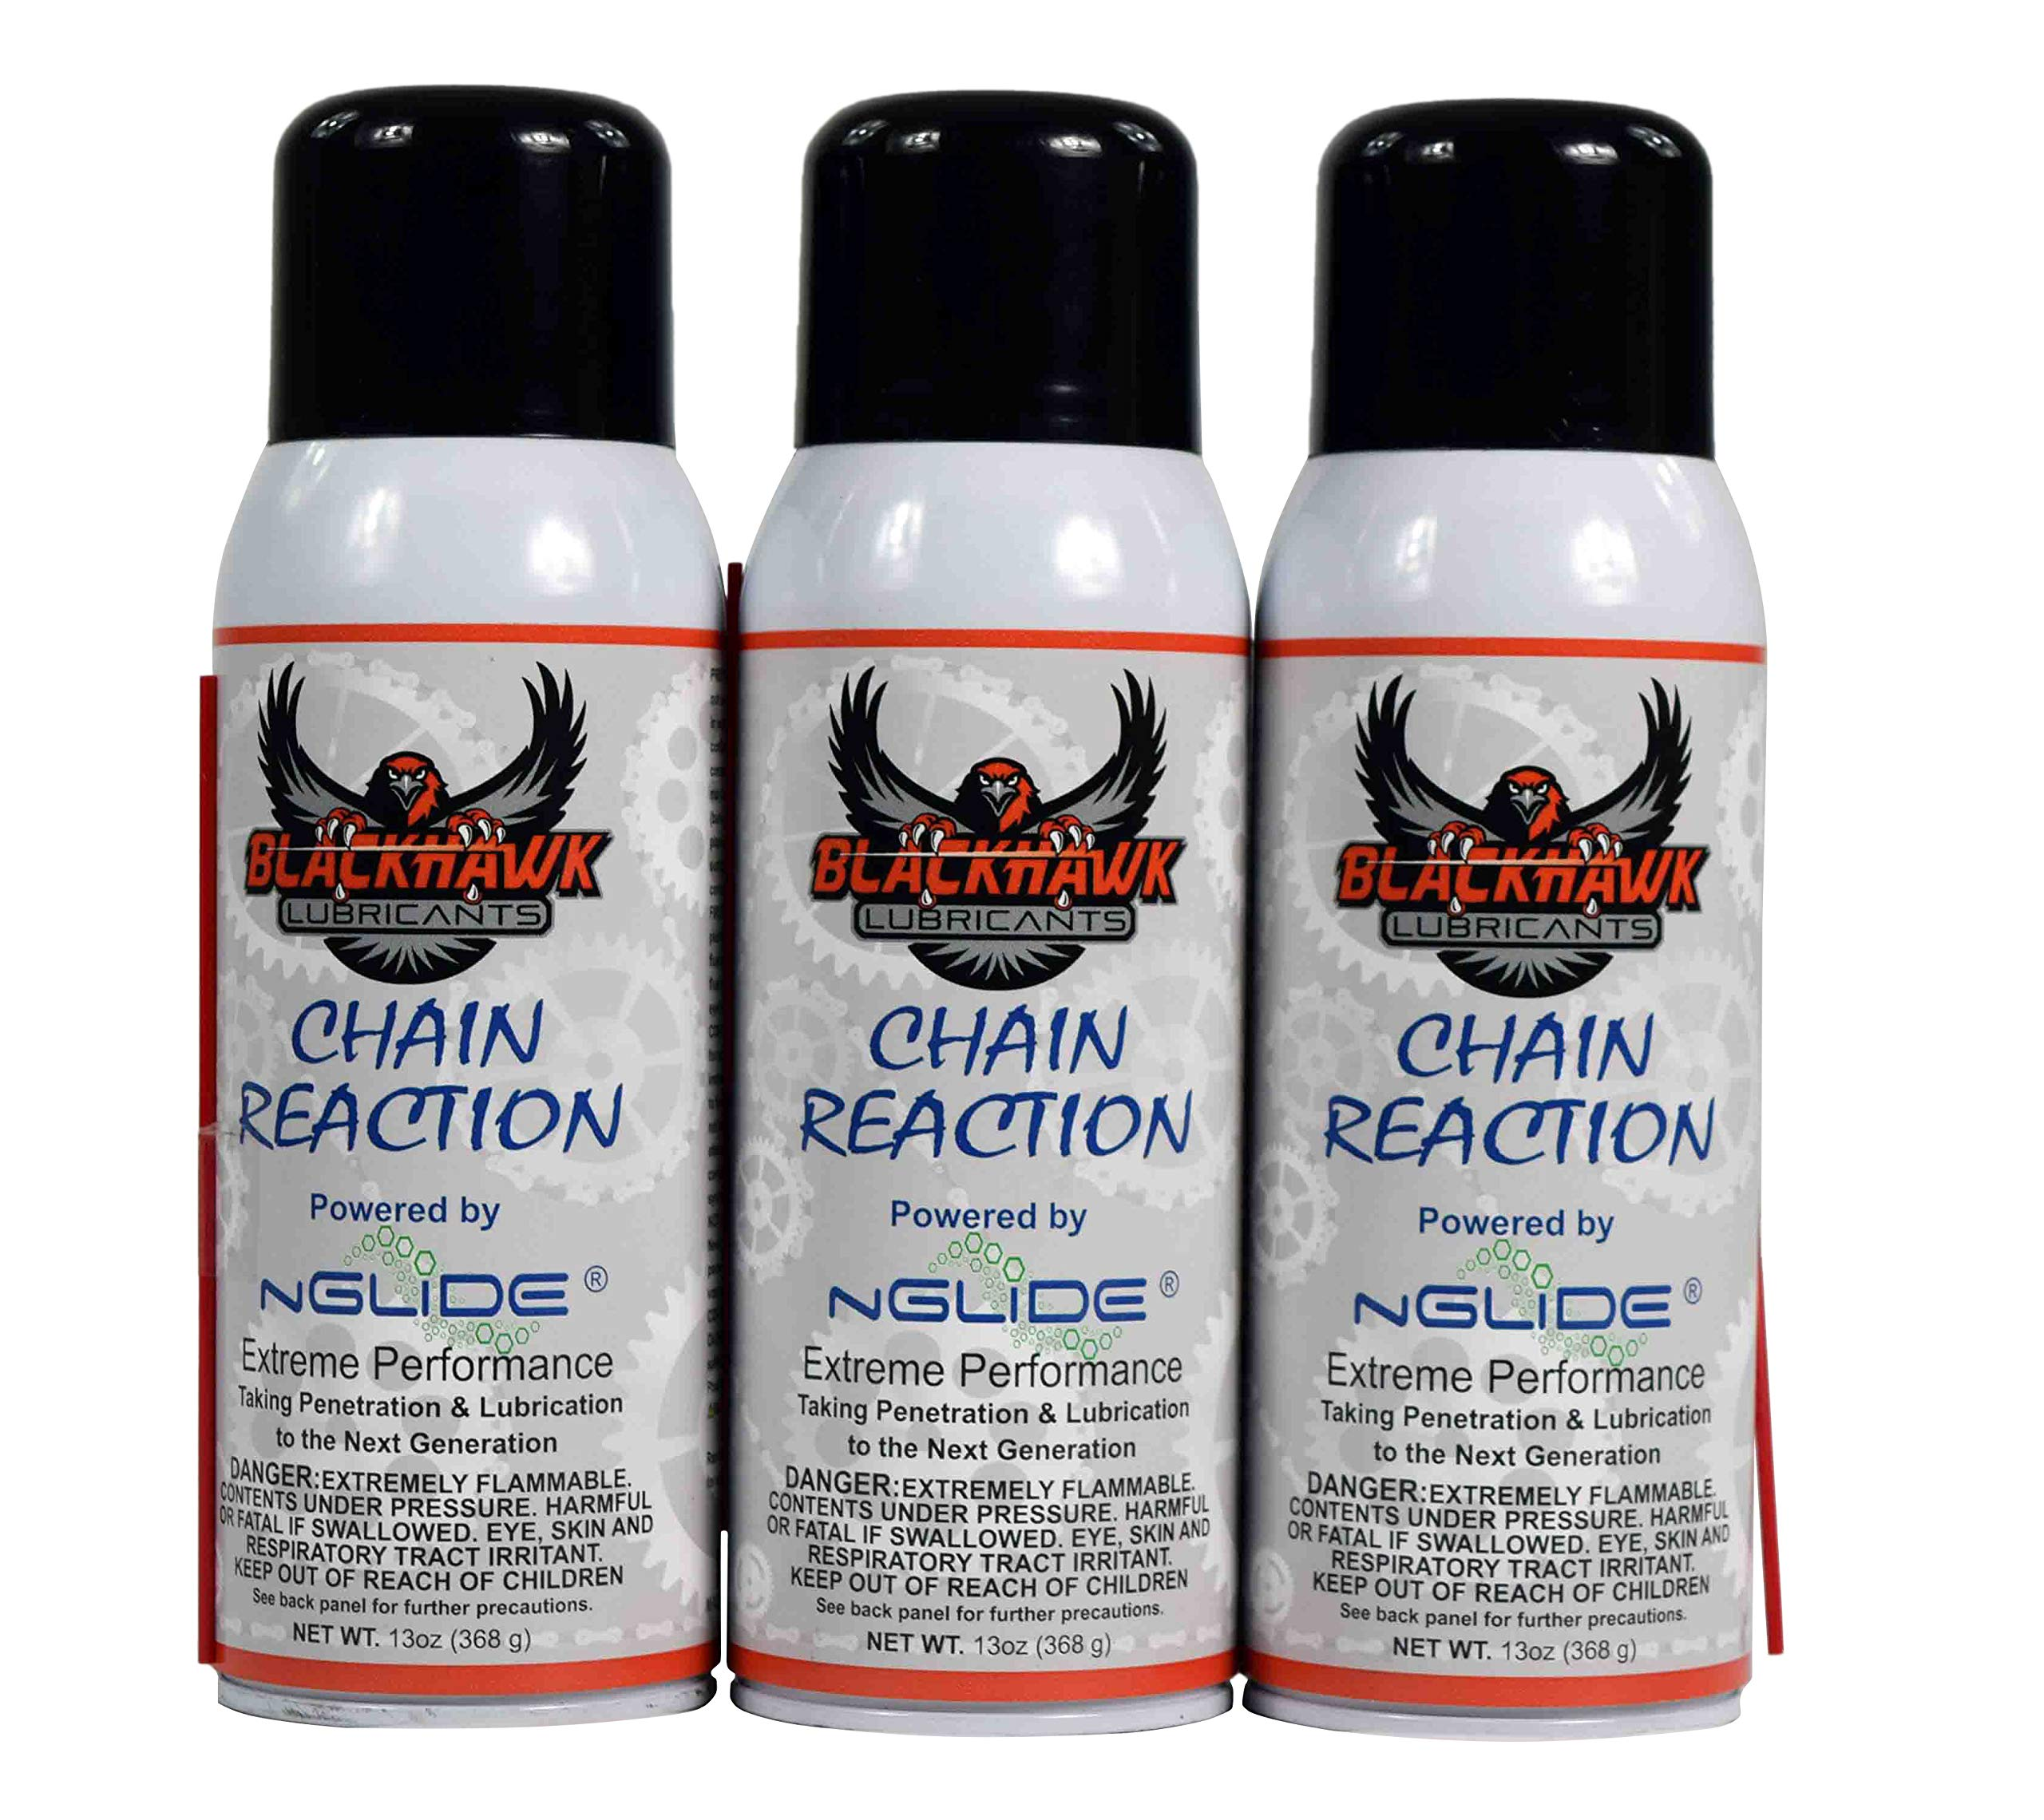 Blackhawk Lubricants CR13A Chain Reaction Penetrating Chain Lube Dirt Resistant Pack (3) by Blackhawk Lubricants